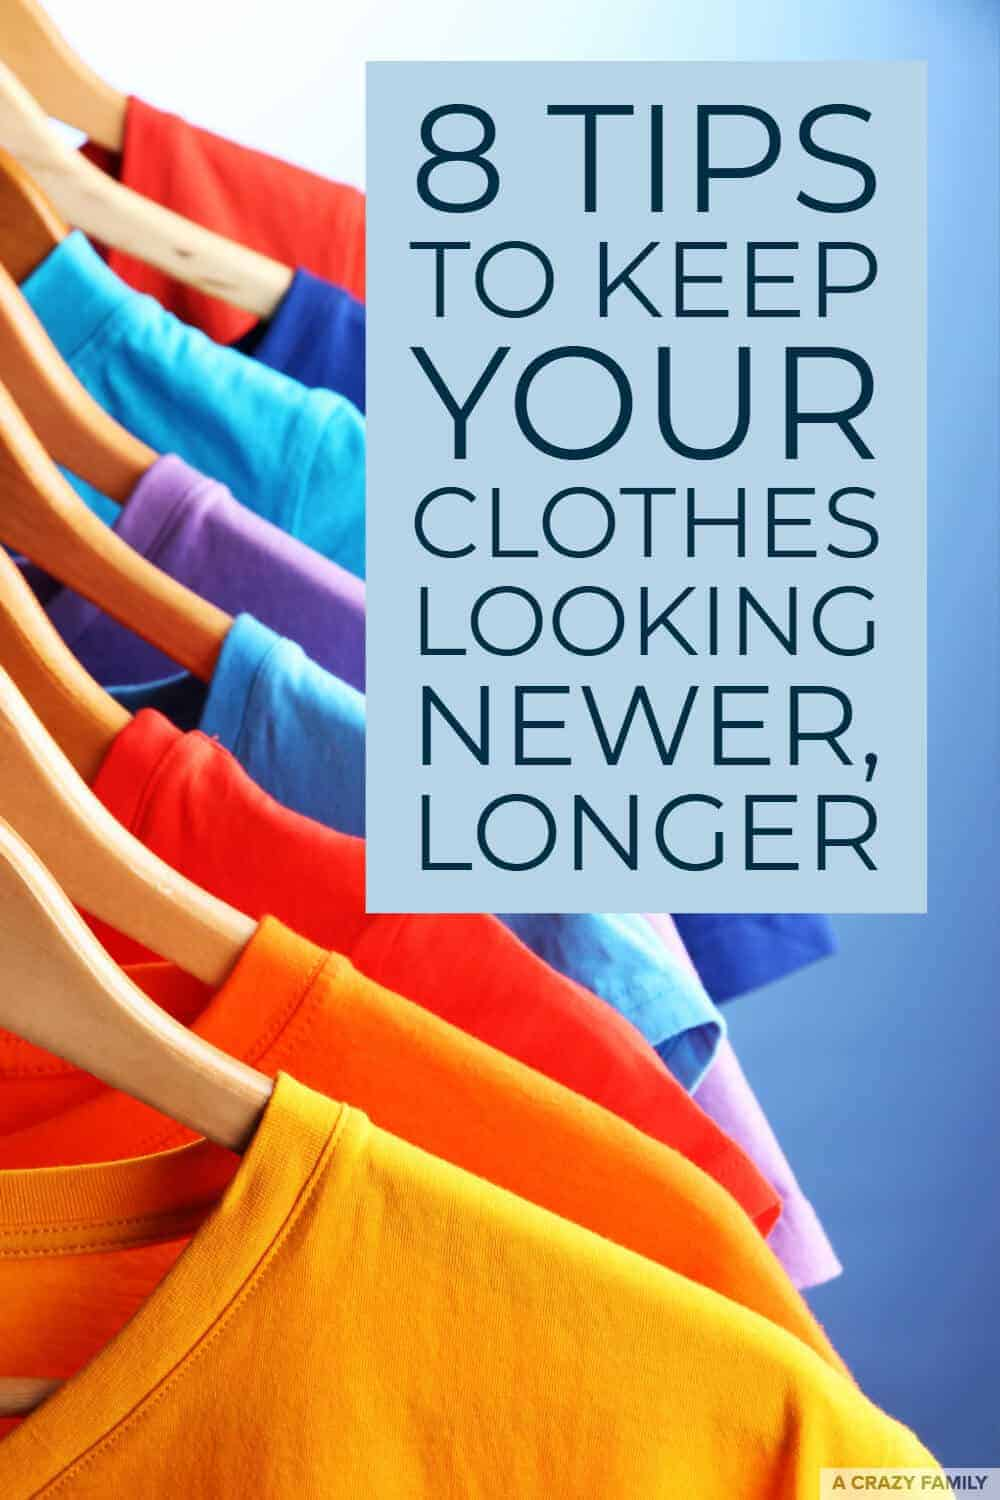 keep clothes looking newer, longer